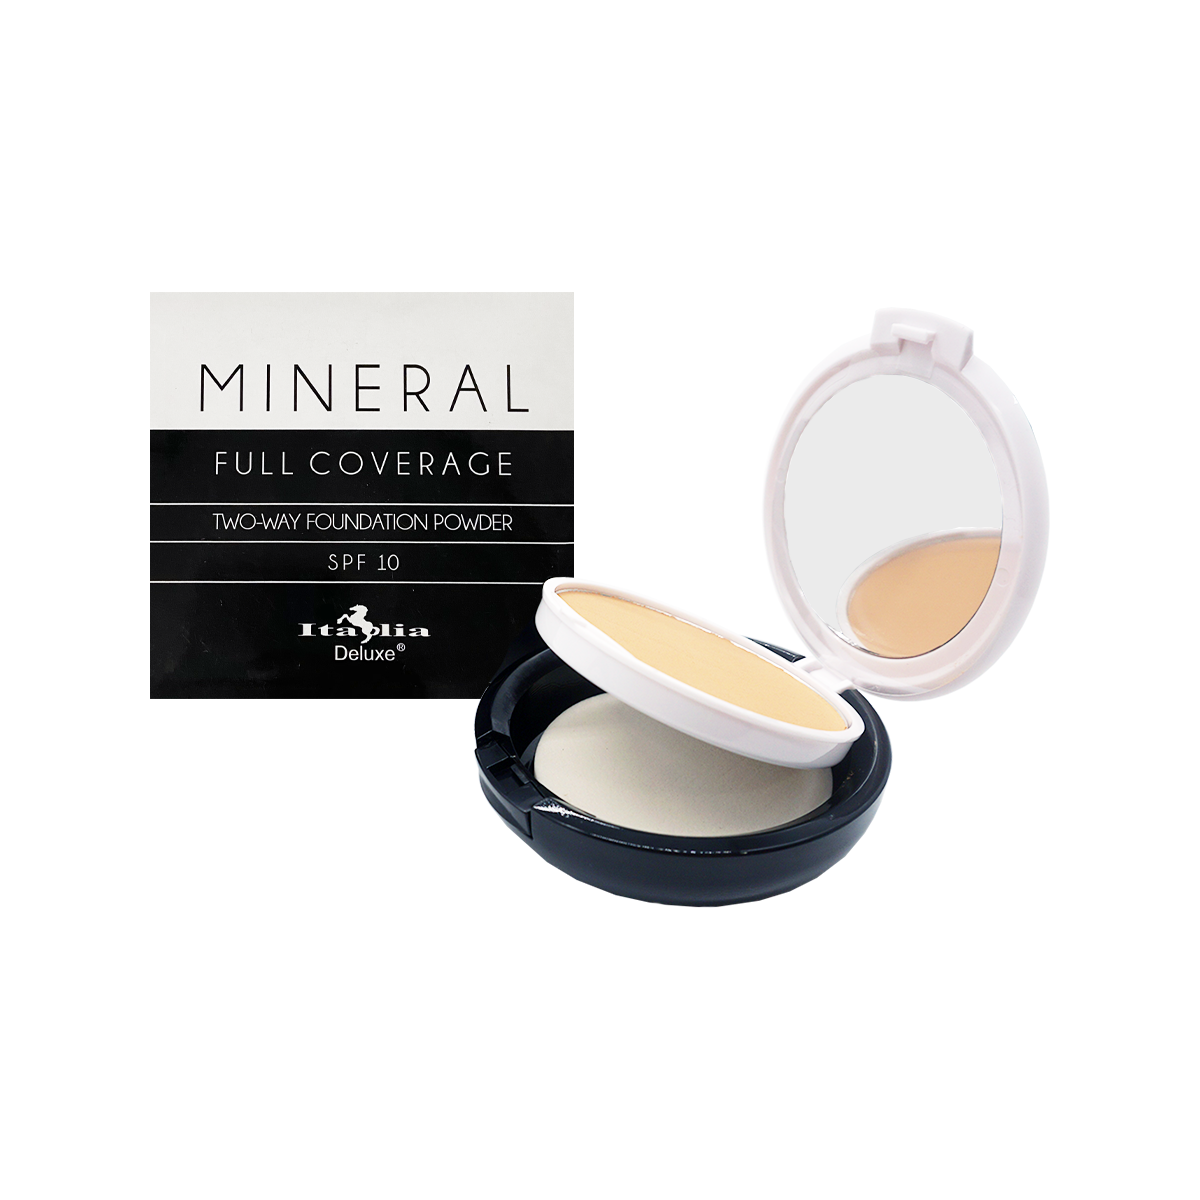 Mineral Full Coverage Foundation Powder